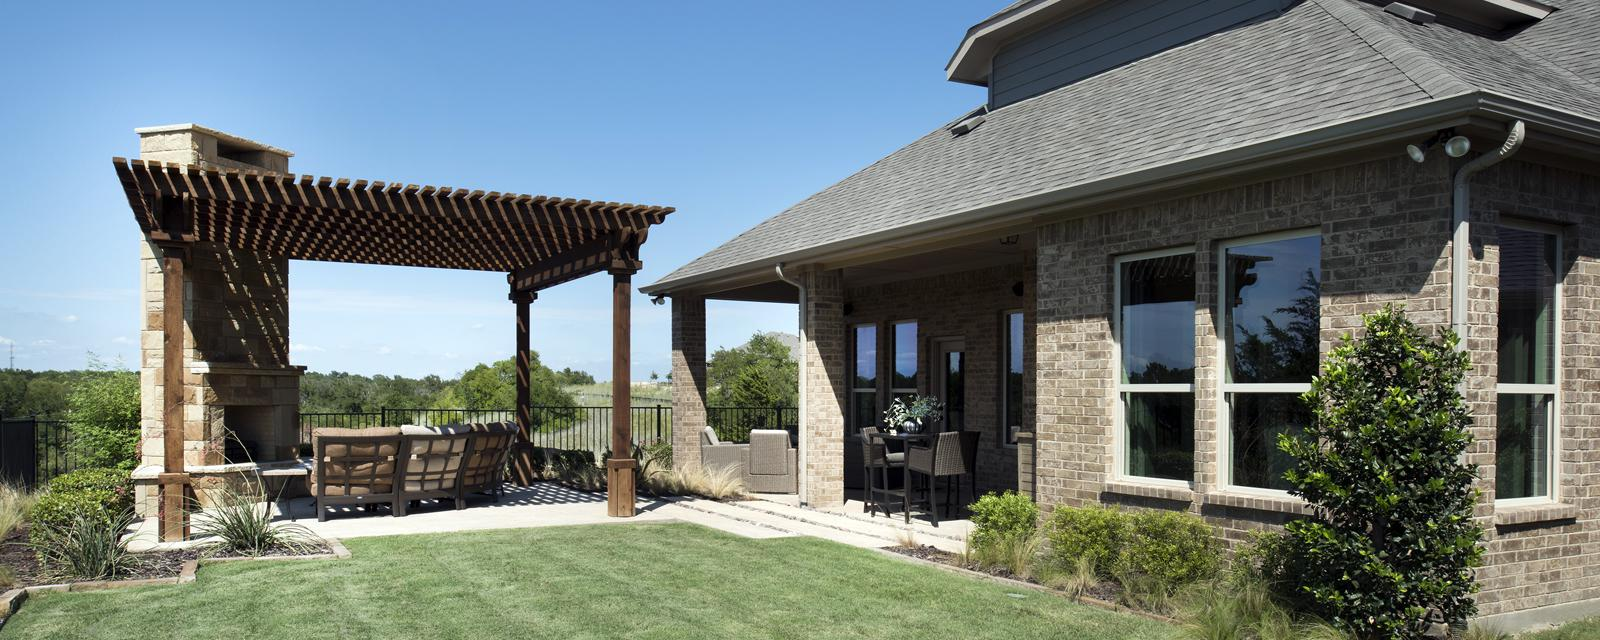 public://division/Dallas/plans/Katy 5288-CJKL/hero/Katy_Outdoor-Living-2.jpg